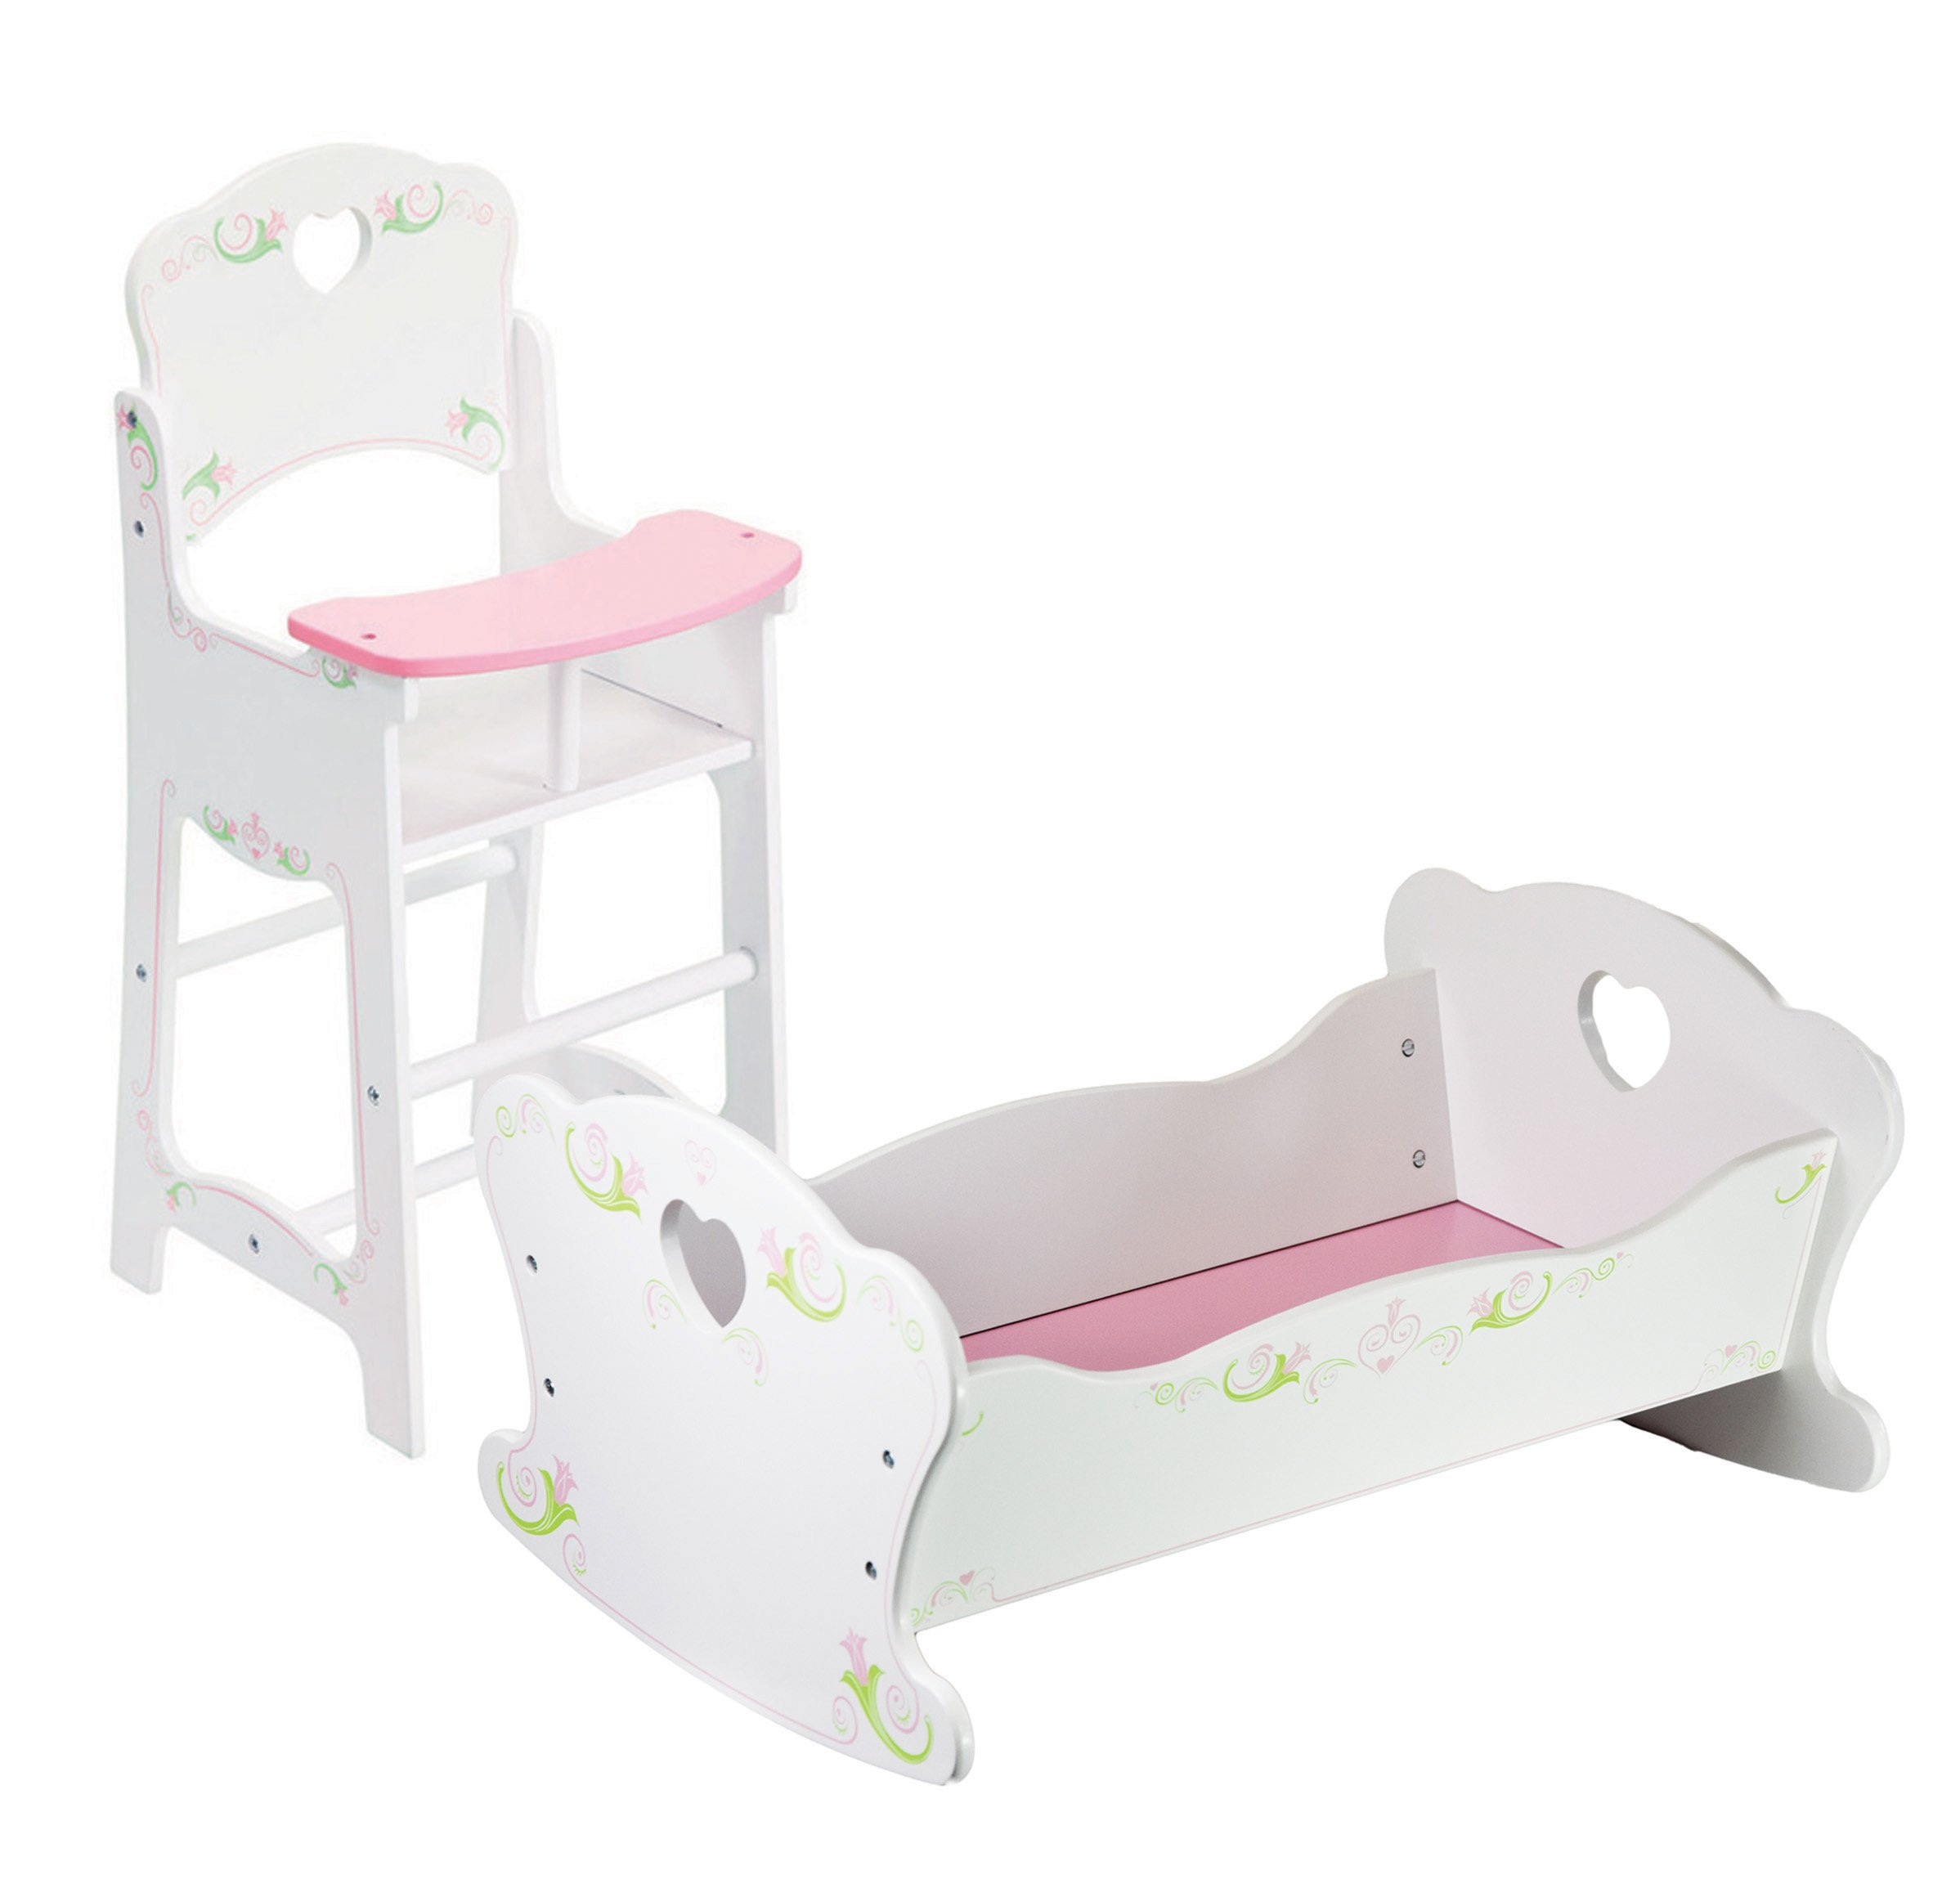 Dolls Wooden High Chair and Rocking Cradle Cot Bed Doll Furniture Set The Magic Toy Shop What a spectacular deal! Our Doll Furniture Set gives young children a high chair and a cradle for their favorite dolls. Both pieces are built to last and can be assembled easily with the enclosed instructions. Comfortably accommodate 48 cm dolls. Fine attention to details with heart-shaped cutouts and floral motif. Made of durable mdf wood with non-toxic paints, sanded smooth with no sharp edges. 1